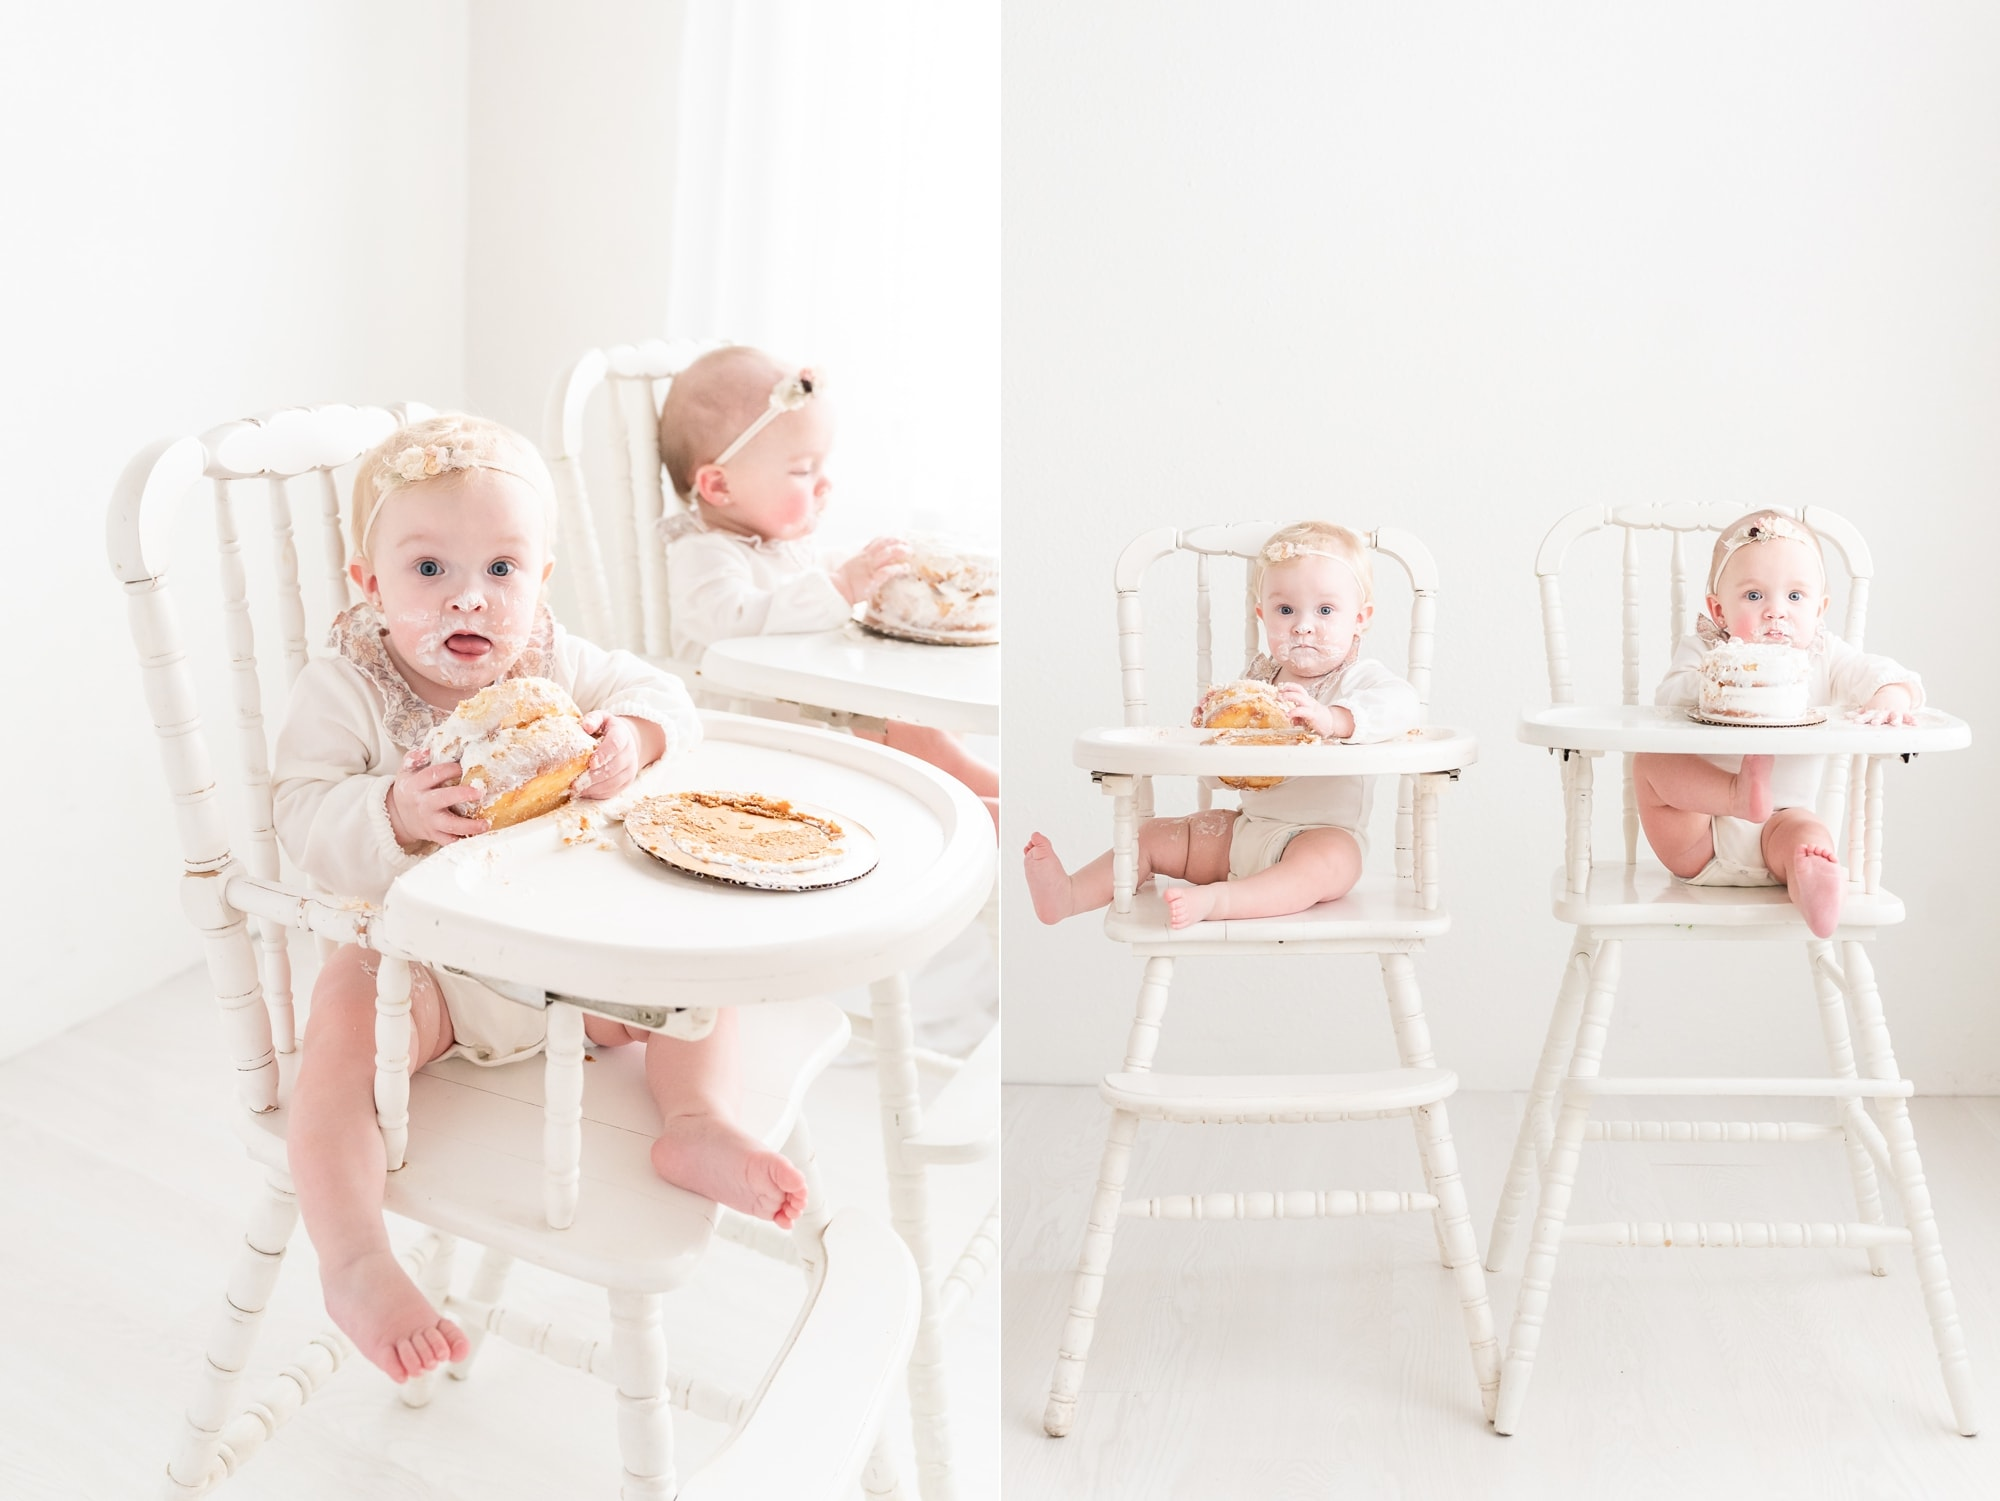 Babies eating cake during first birthday session in Dallas studio. Photos by Aimee Hamilton Photography.